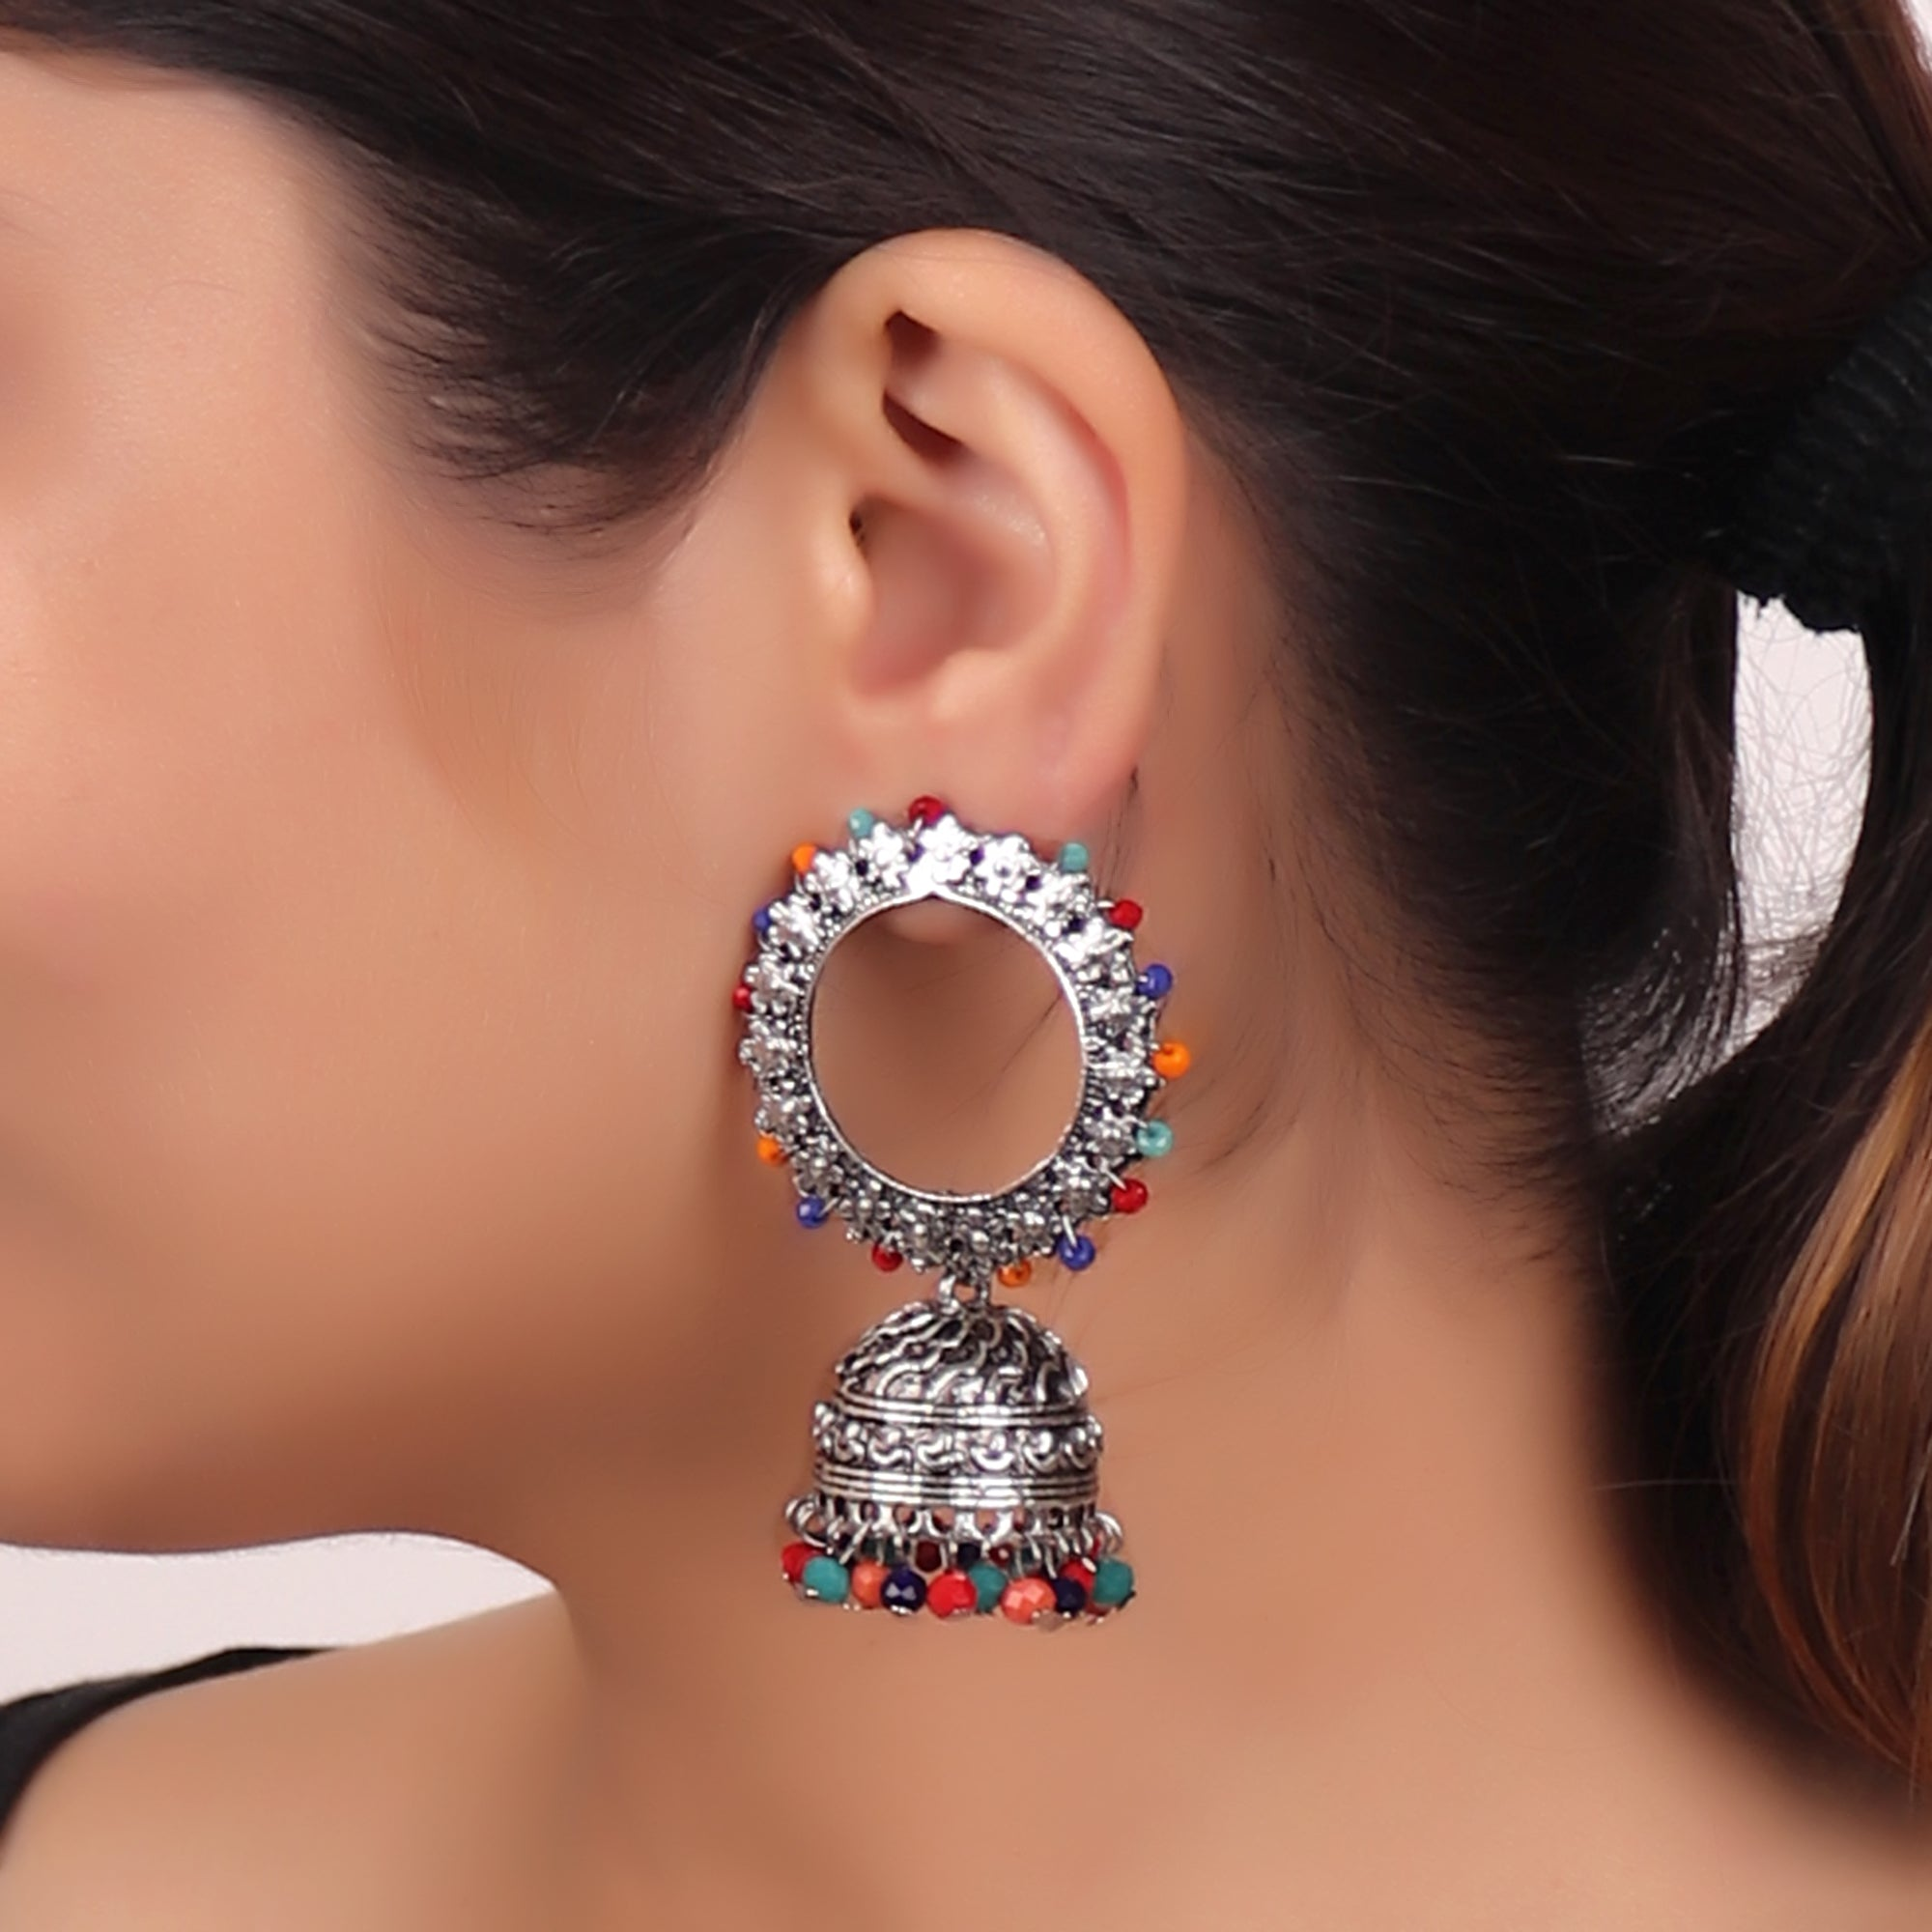 Earrings,Endearing Earrings with Jhoomer in Multicolor - Cippele Multi Store